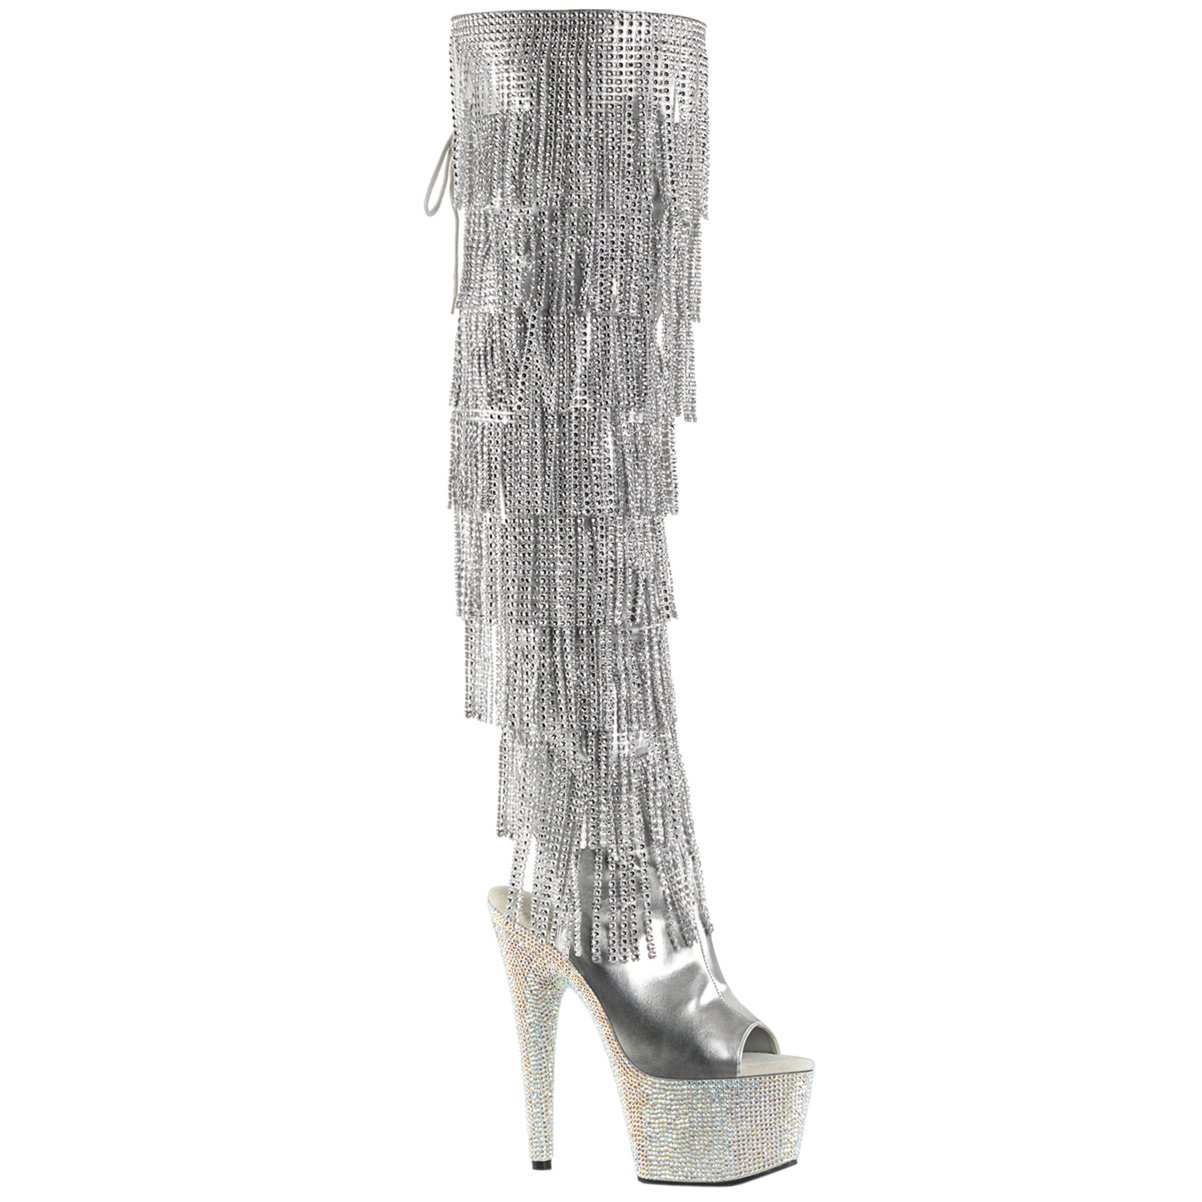 Womens Over The Knee Heel Boots Silver Fringe Rhinestone Shoes 7 Inch Heels Size: 7